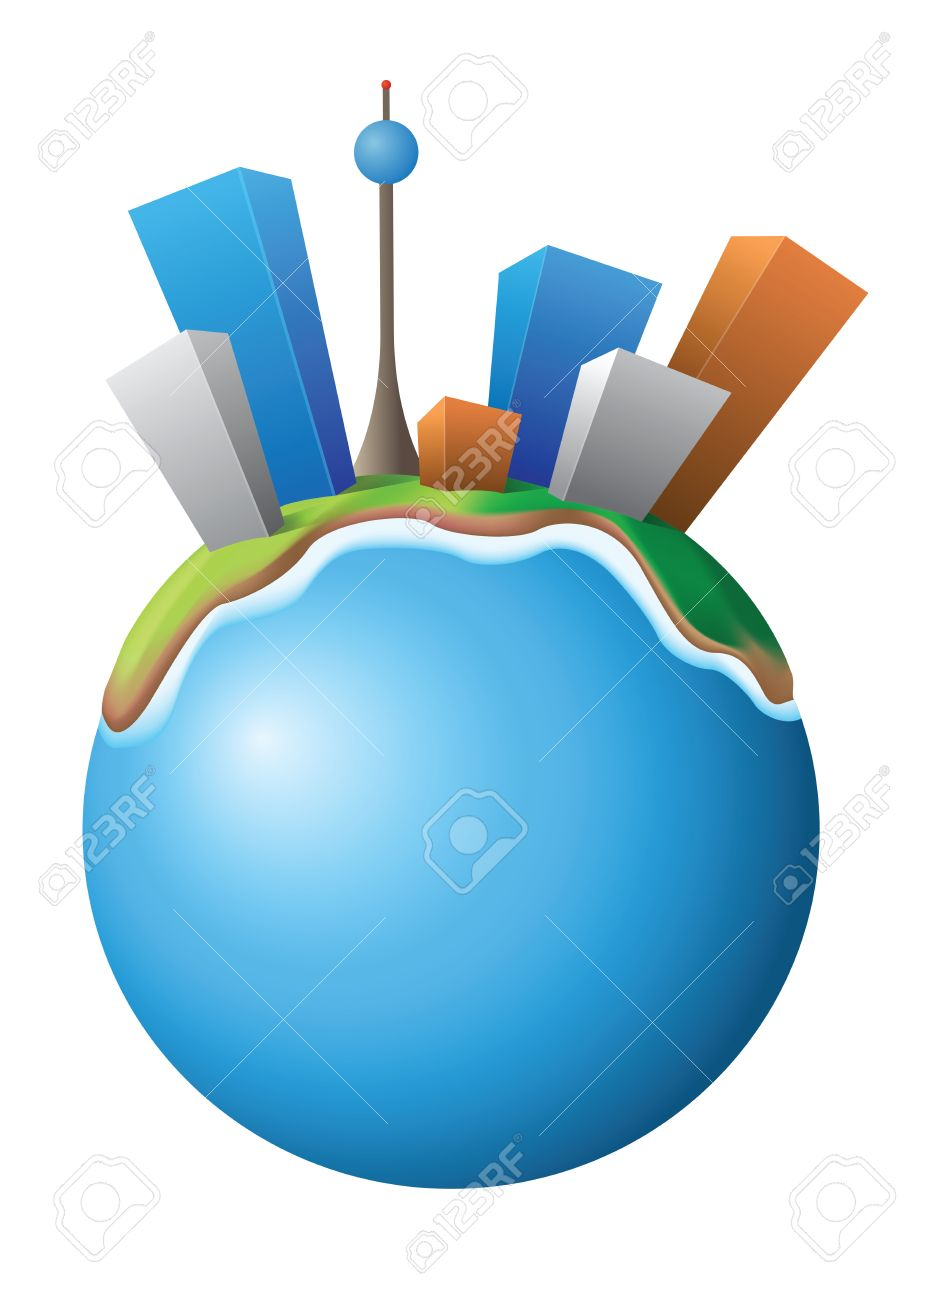 Vector Illustration Of The Small Planet With City Royalty Free.